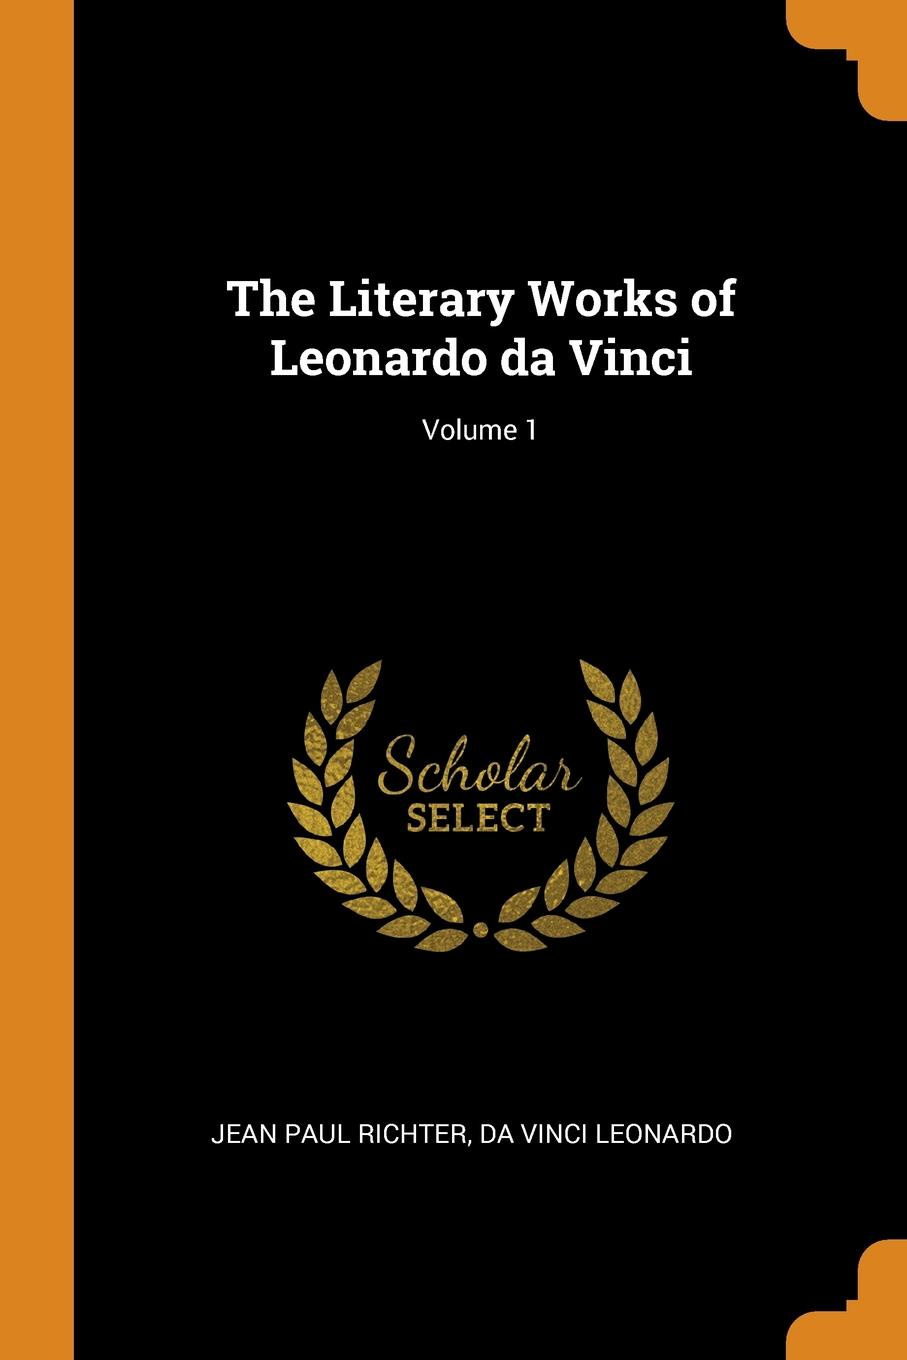 Jean Paul Richter, da Vinci Leonardo. The Literary Works of Leonardo da Vinci; Volume 1